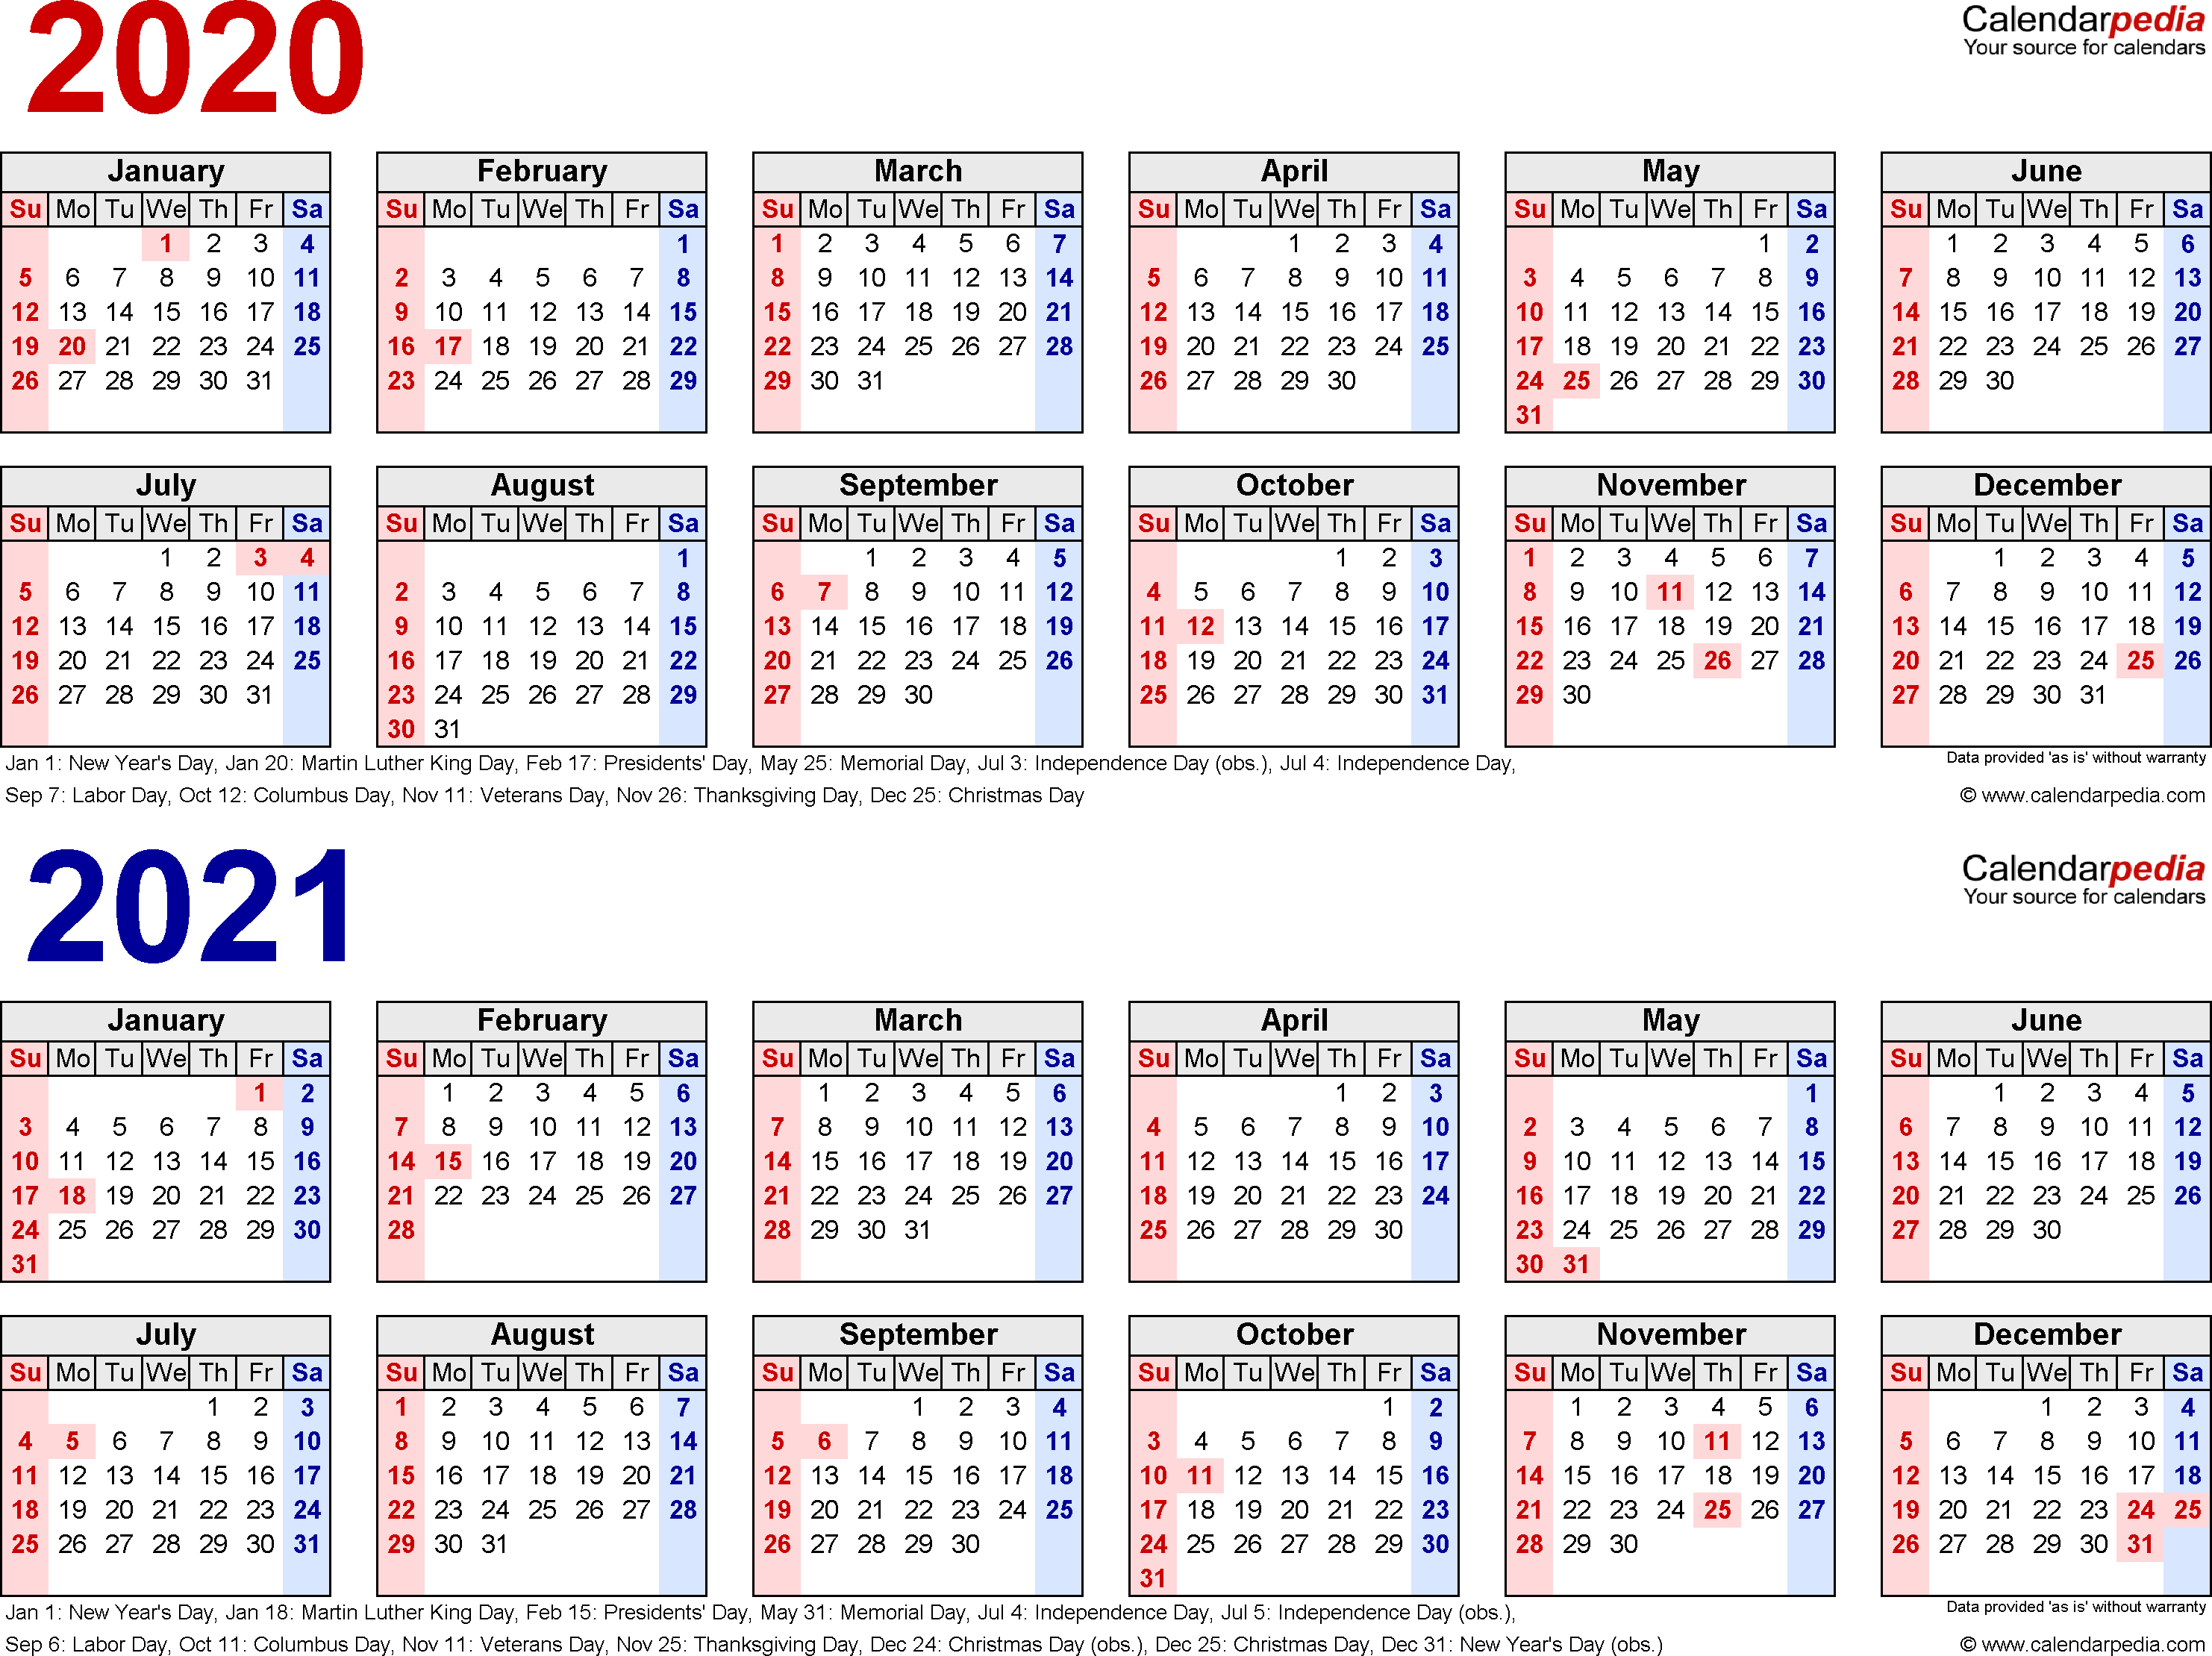 2020-2021 Calendar - Free Printable Two-Year Excel Calendars